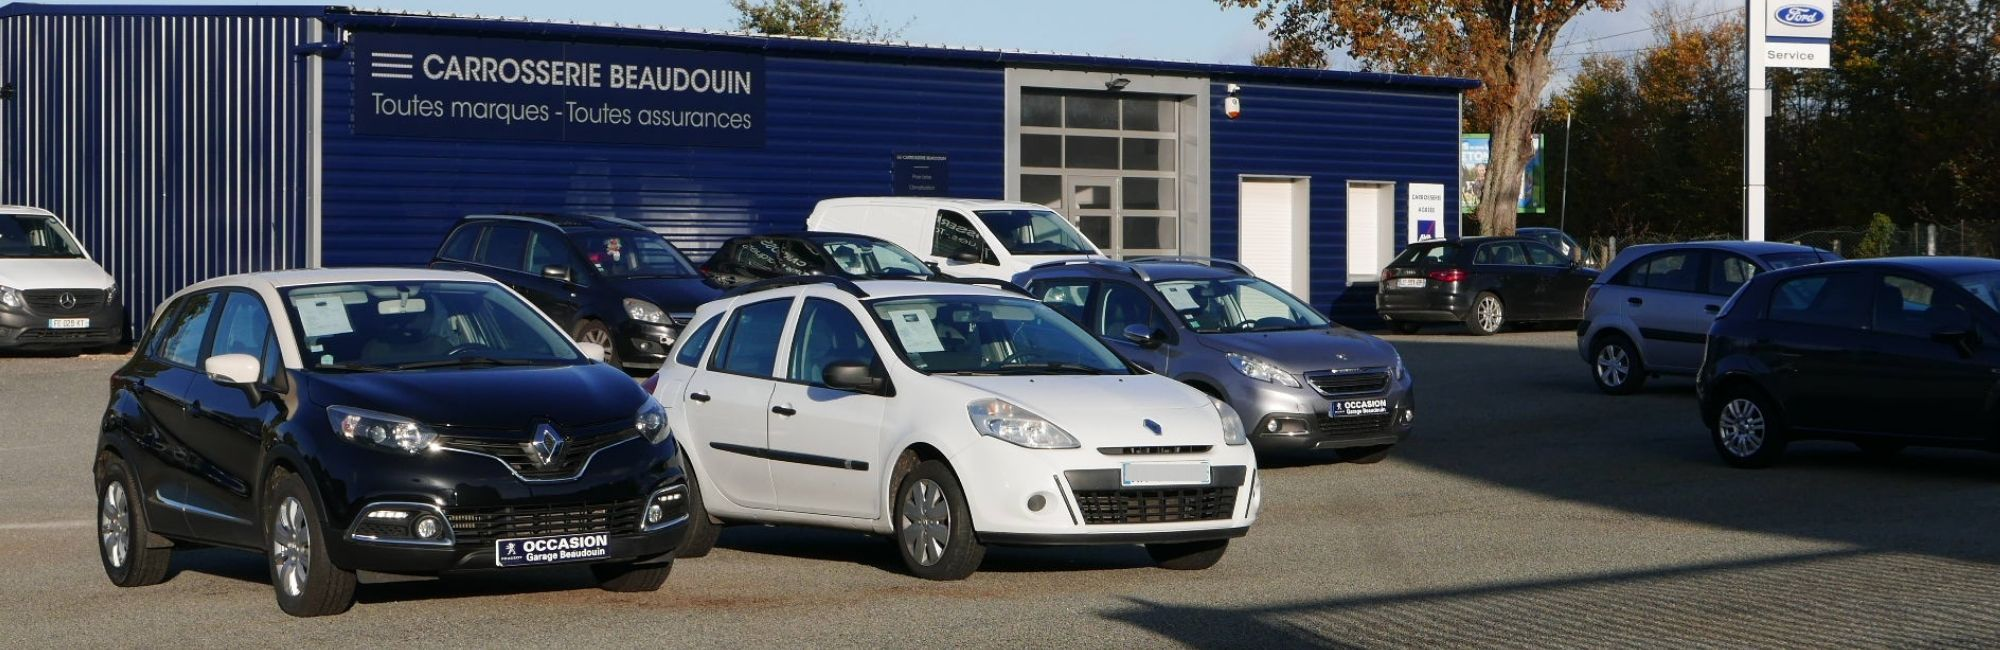 Garage Peugeot à Betton : Garagiste toutes marques